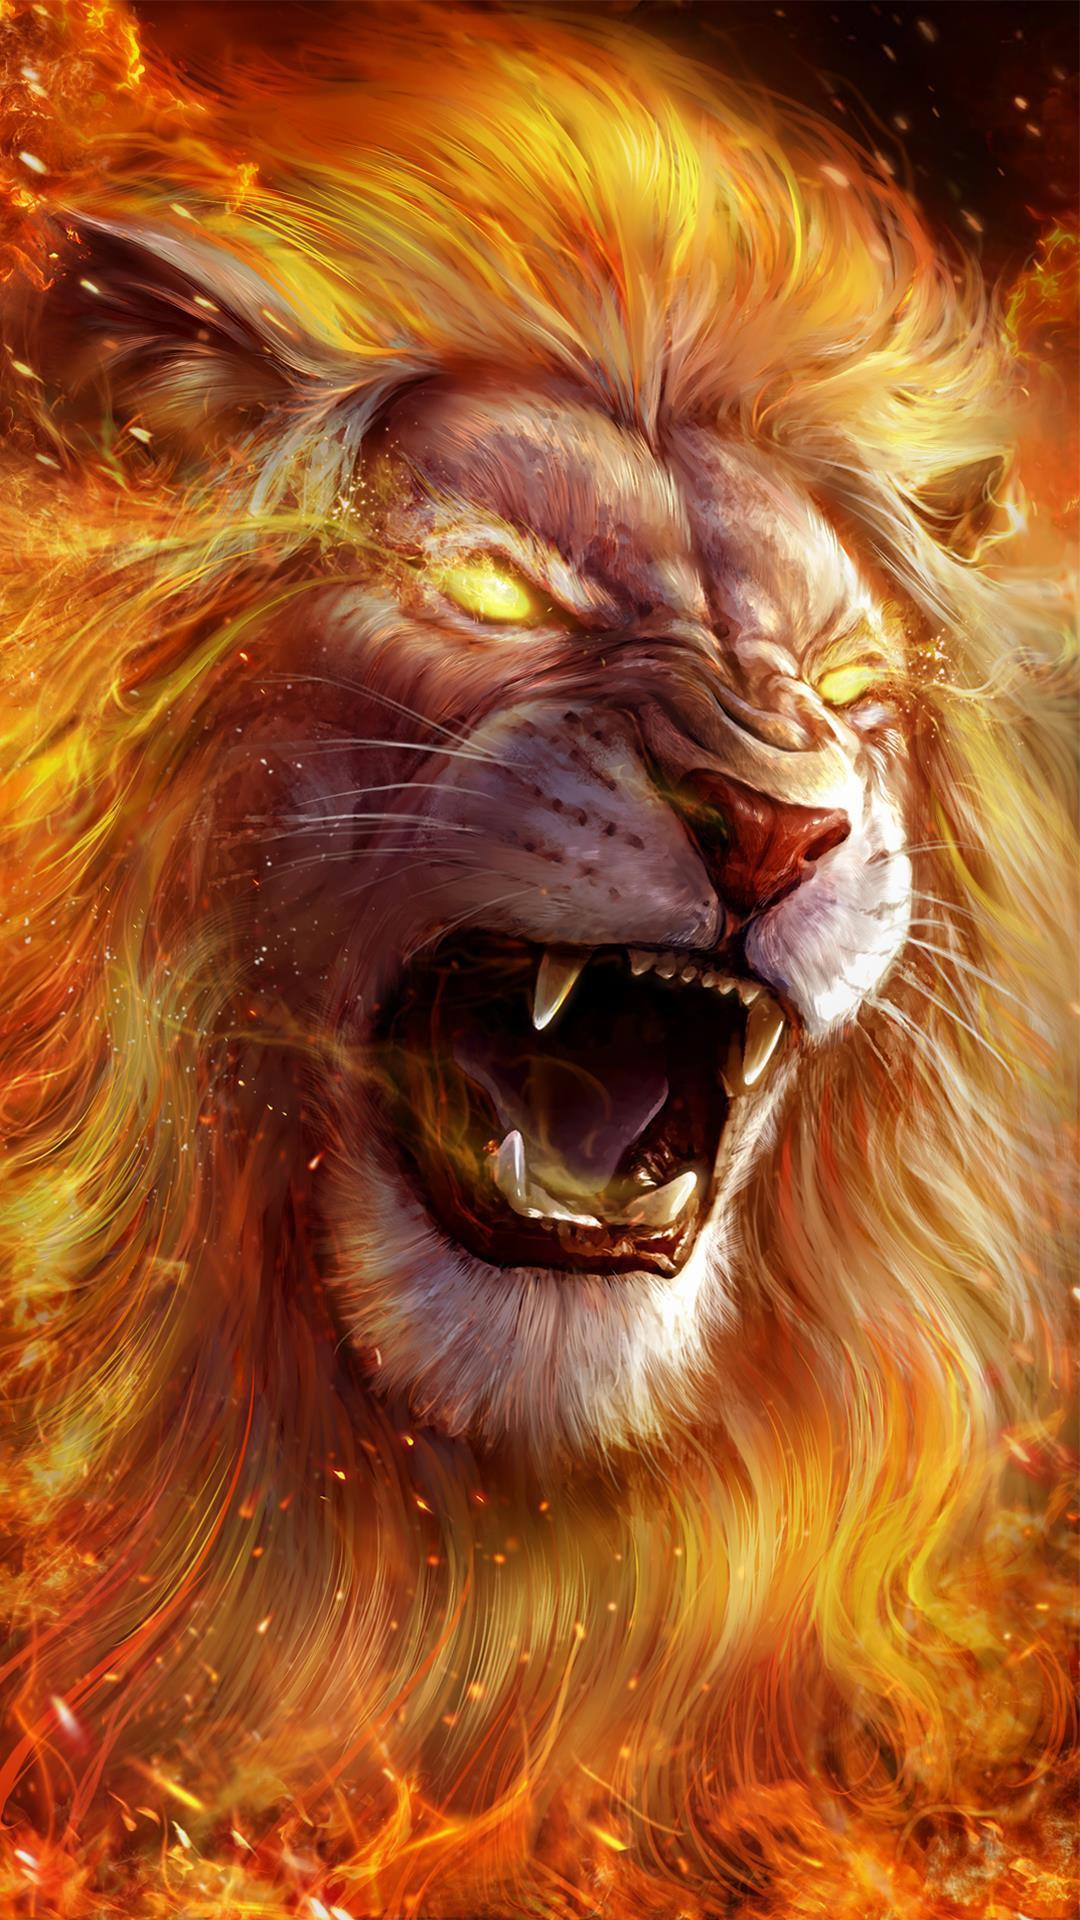 Lion Hd Wallpaper - Lion Wallpaper Live , HD Wallpaper & Backgrounds